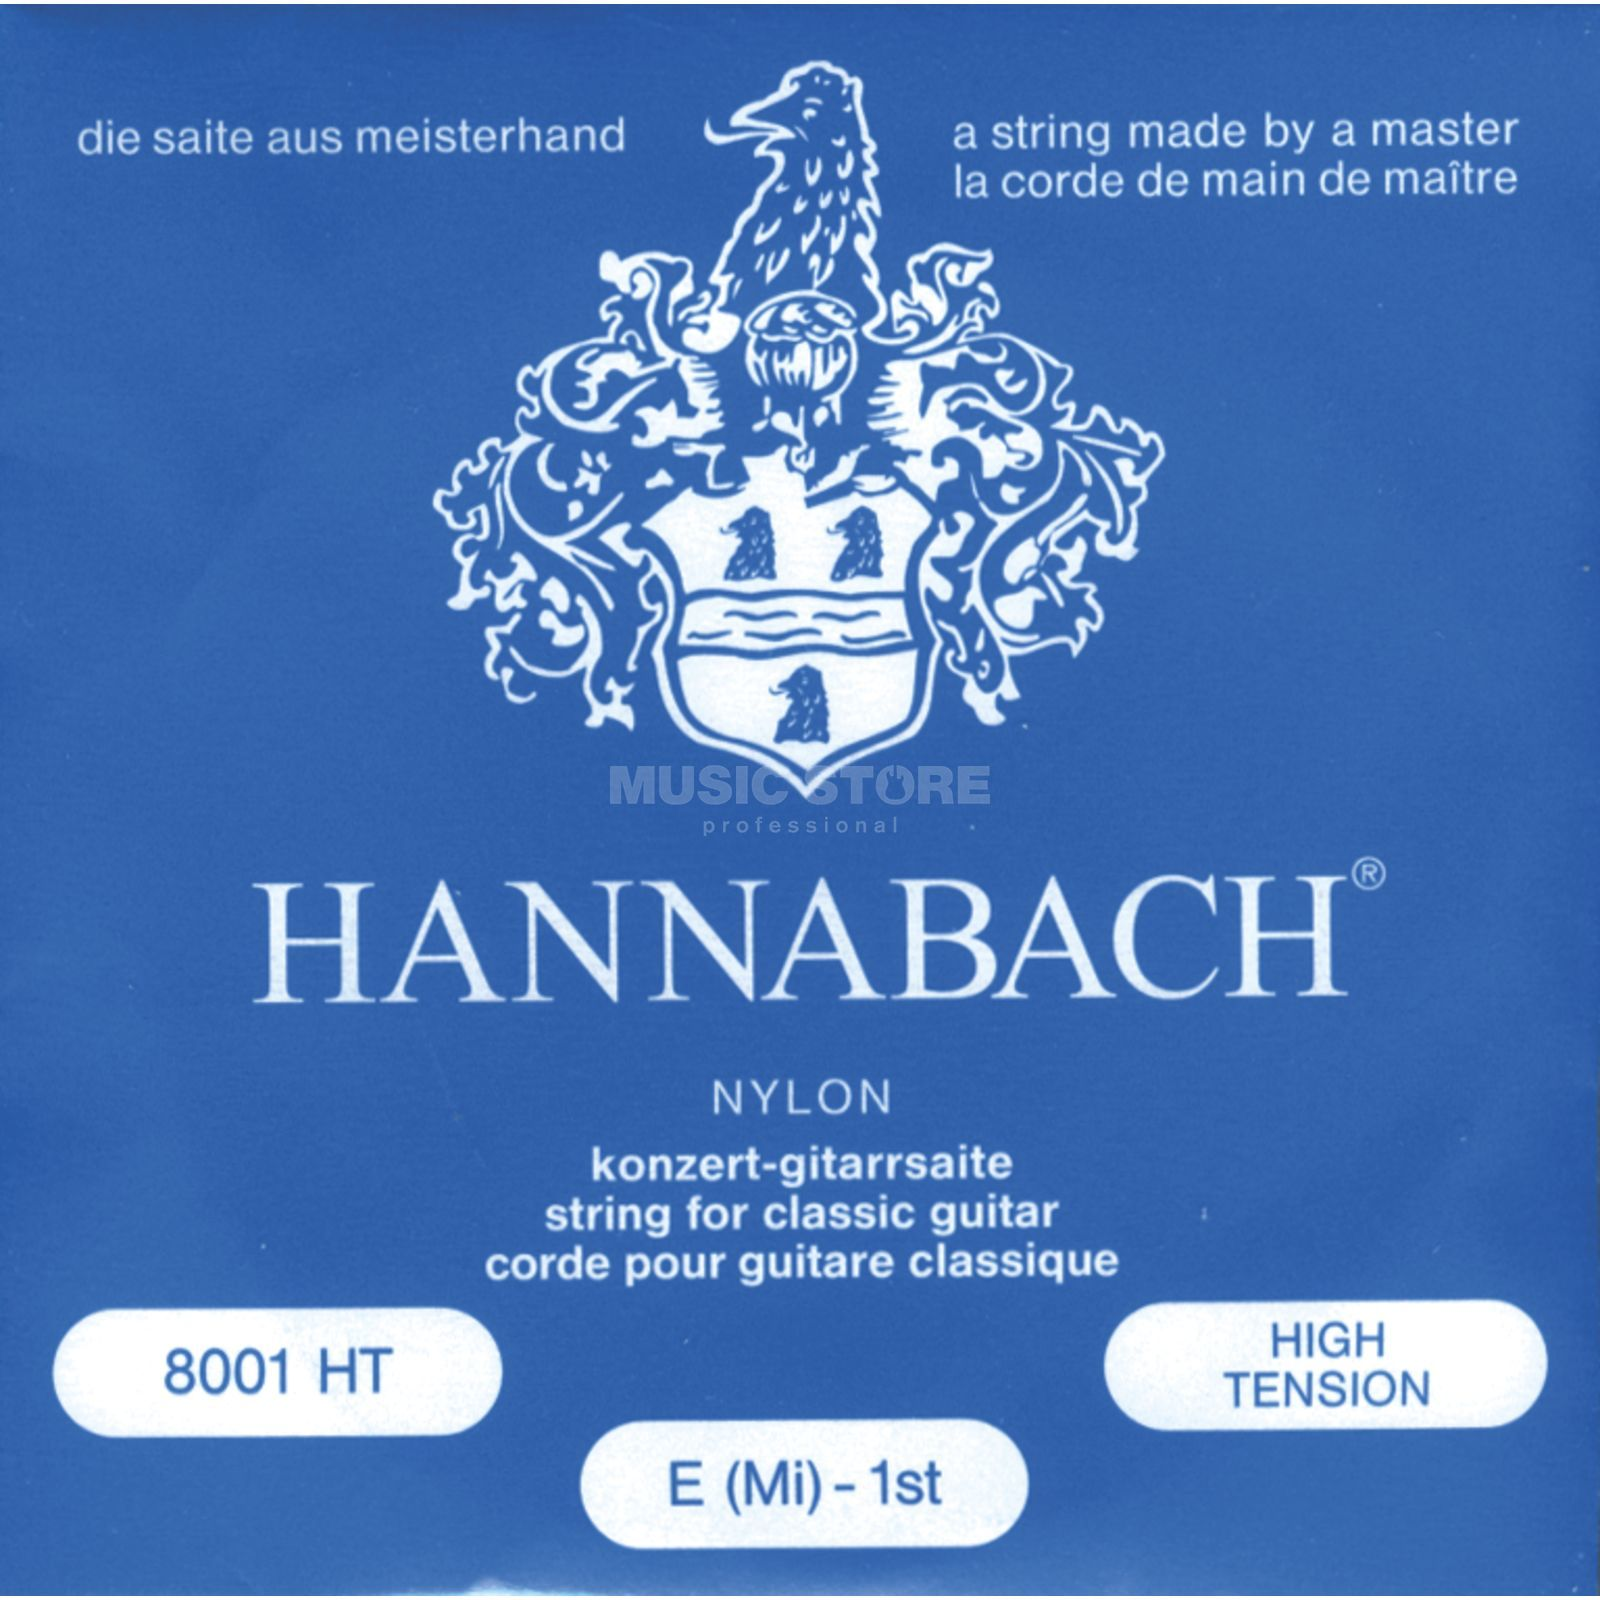 Hannabach 8001 HT Classical Strings High Tension Product Image